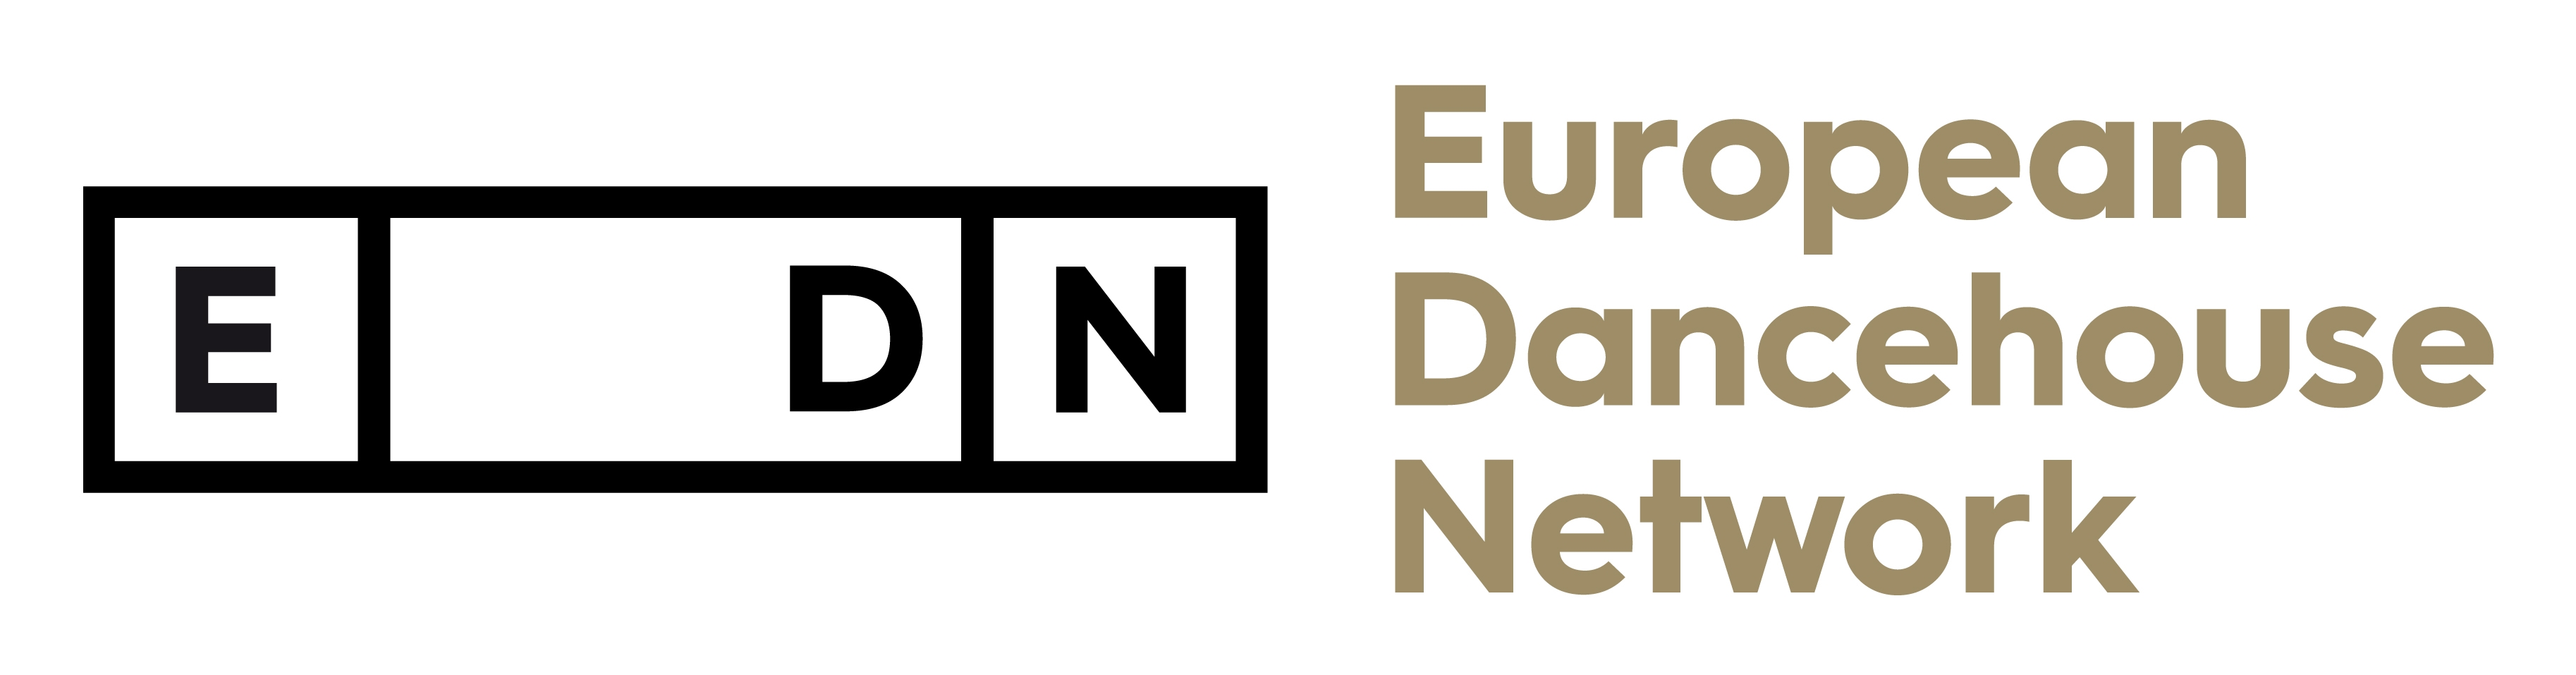 European Dancehouse Network